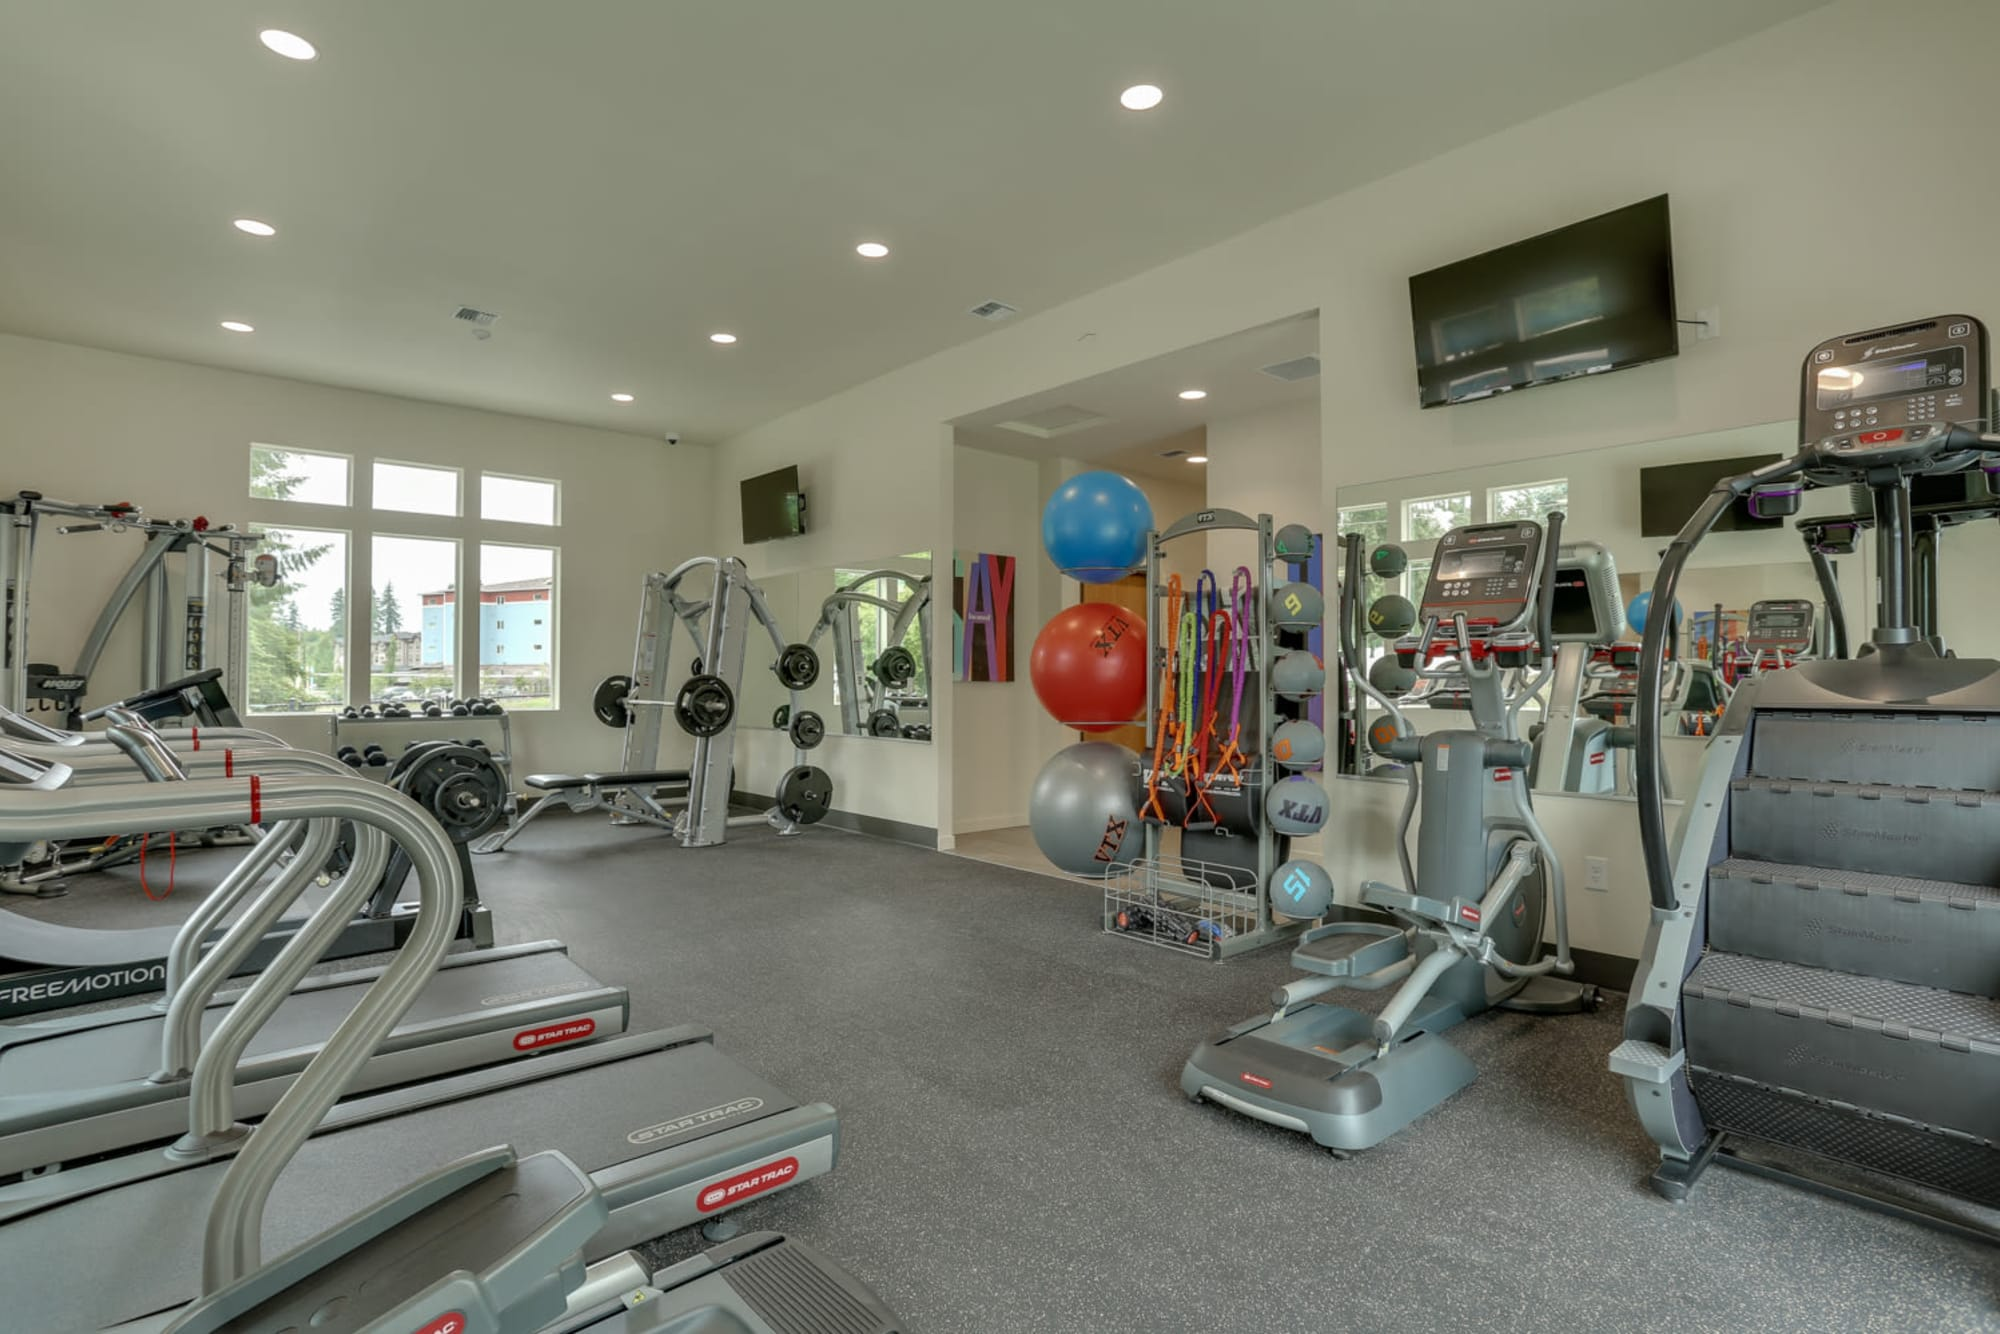 24-hour fitness center at Haven Hills in Vancouver, Washington